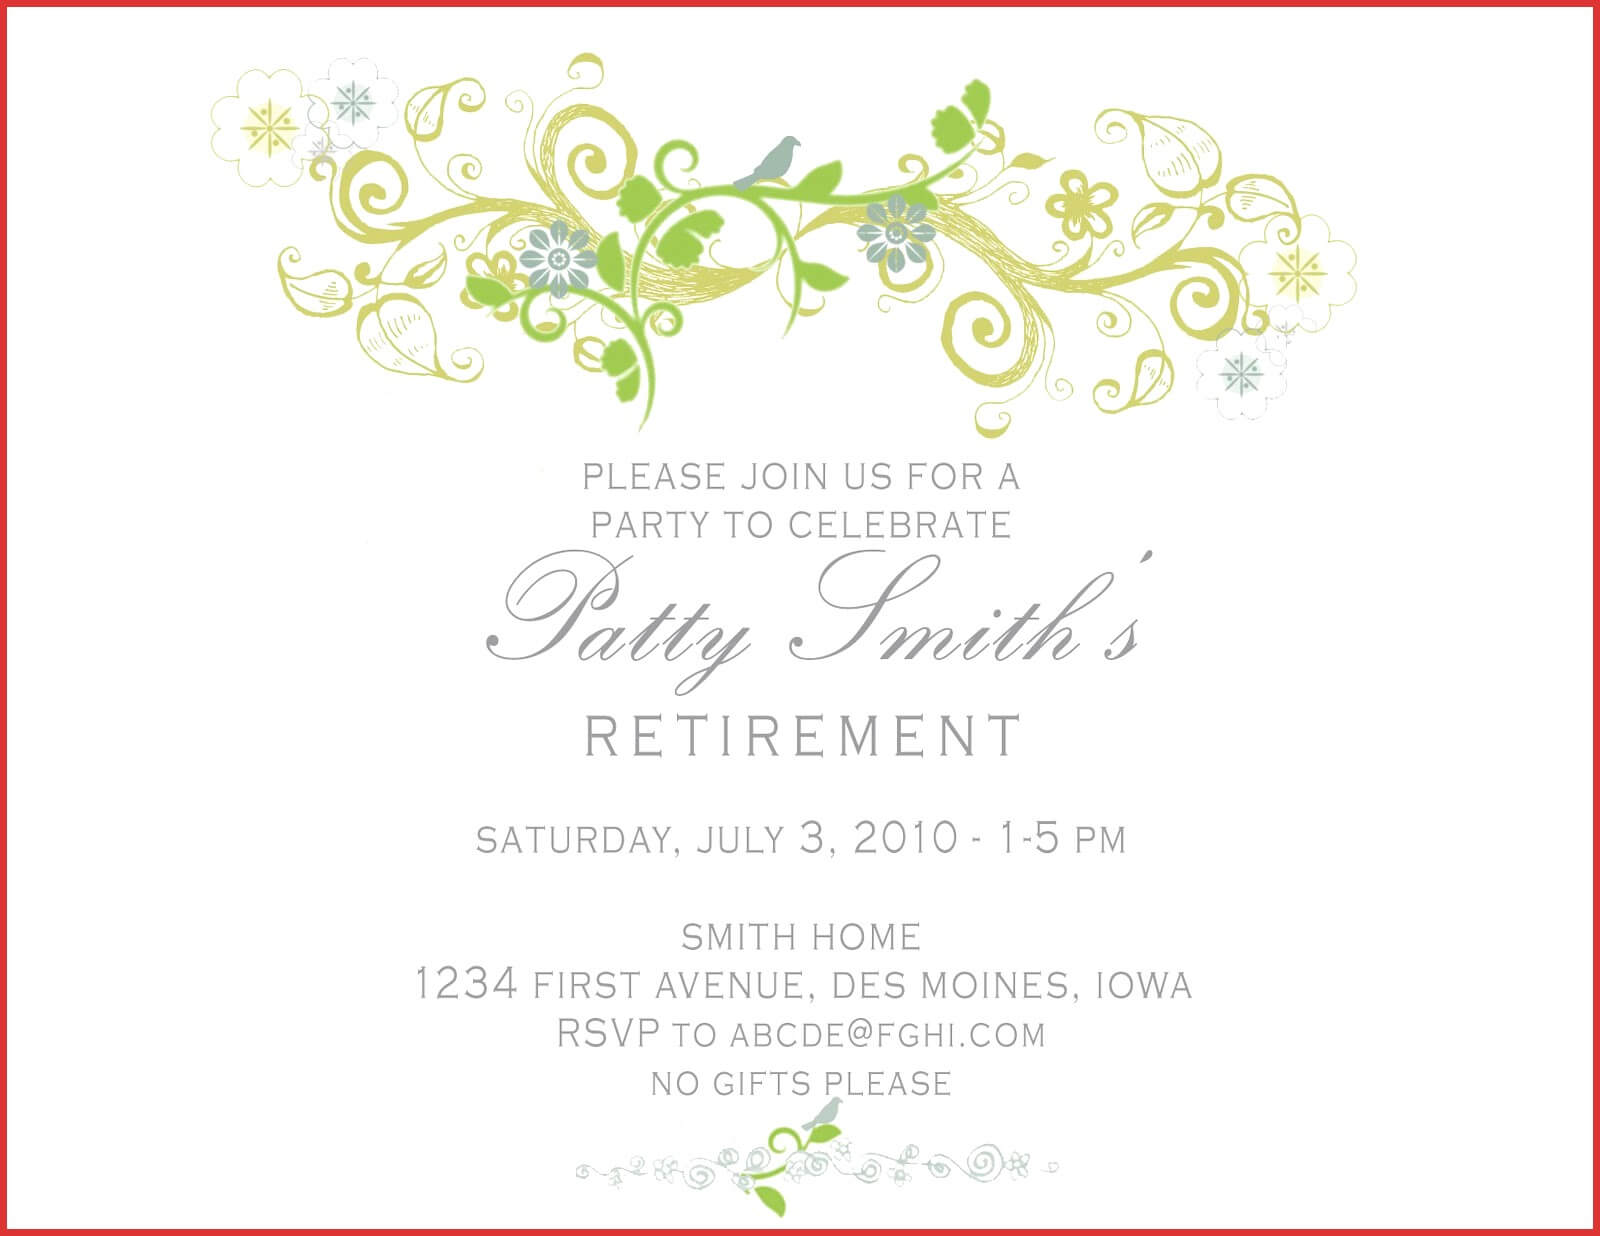 010 T Breathtaking Retirement Party Invitation Templates With Retirement Card Template